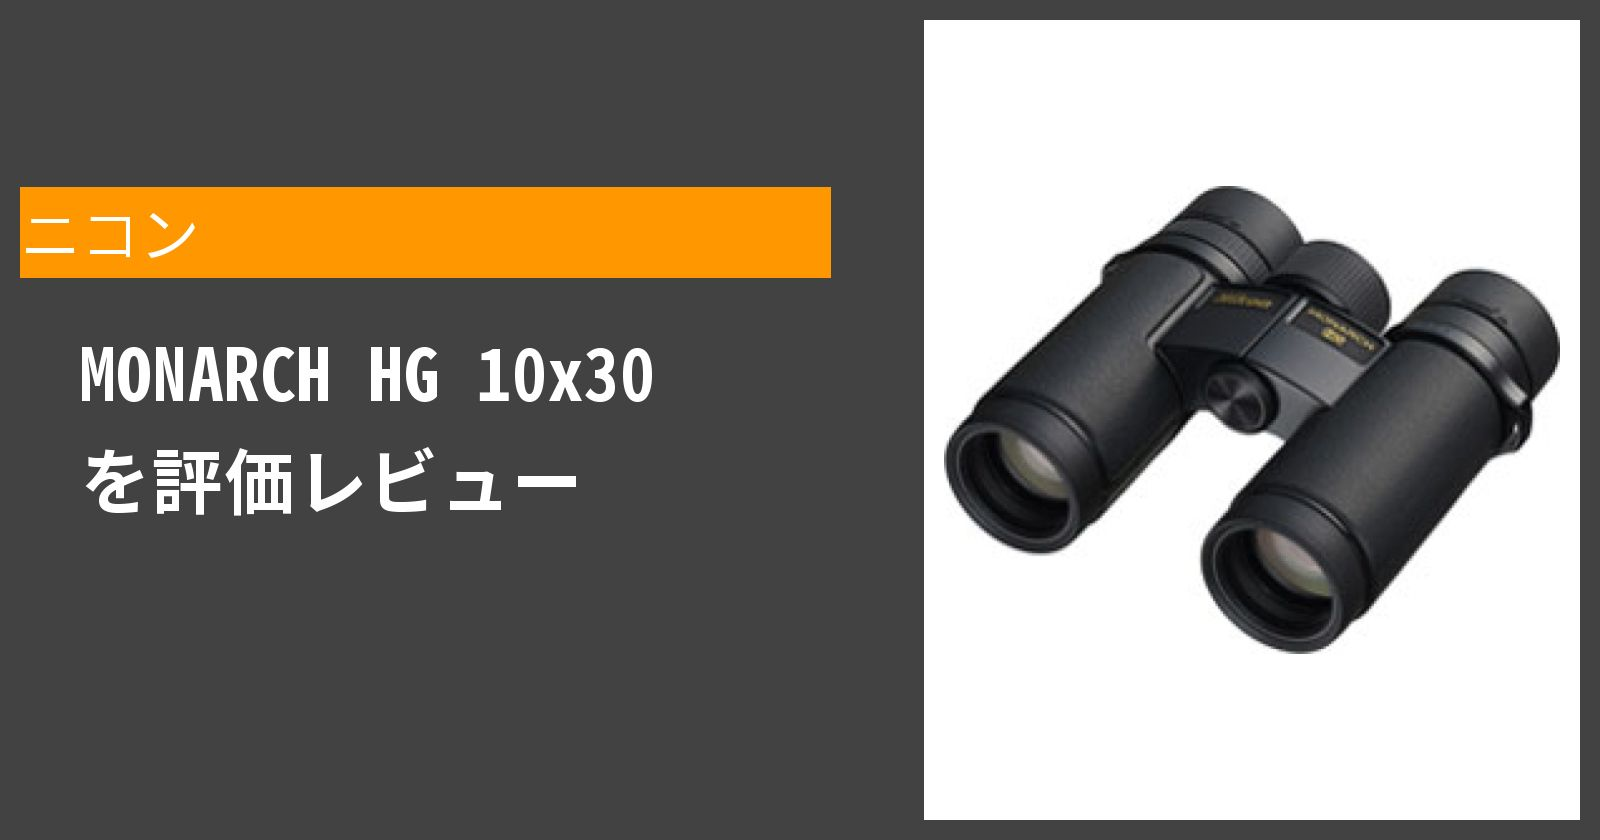 MONARCH HG 10x30を徹底評価